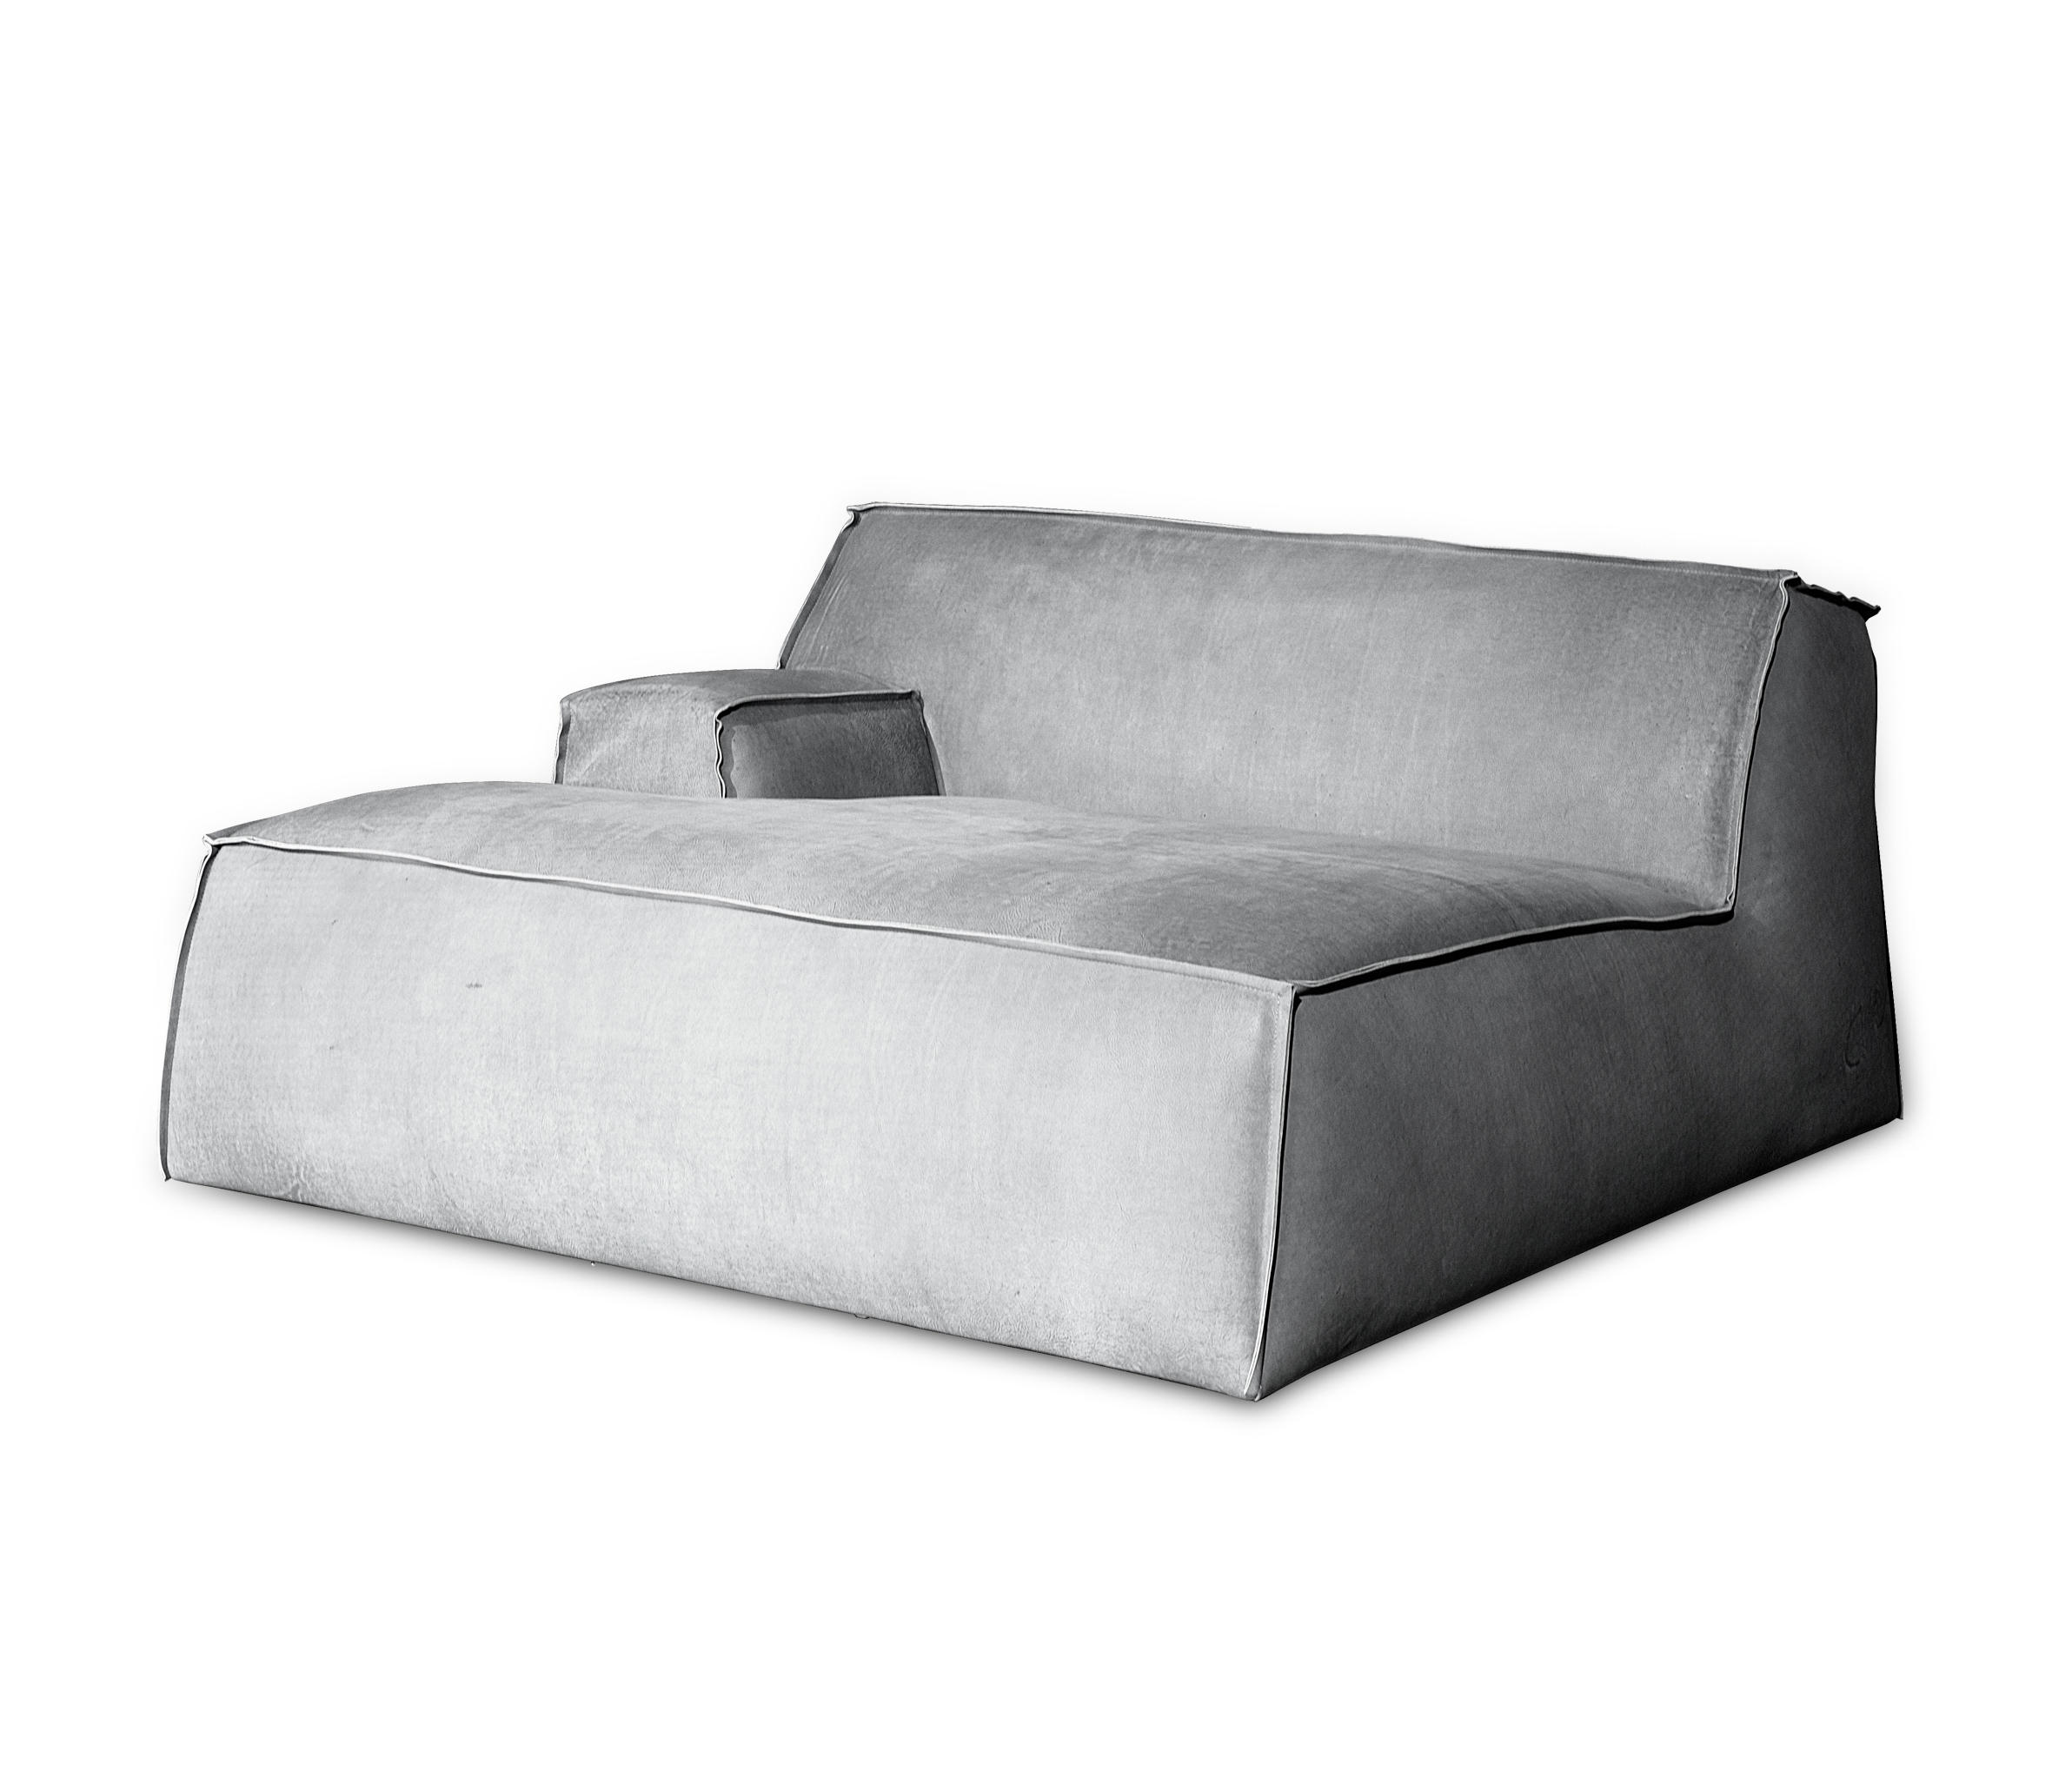 damasco sofa module modular seating elements from baxter. Black Bedroom Furniture Sets. Home Design Ideas